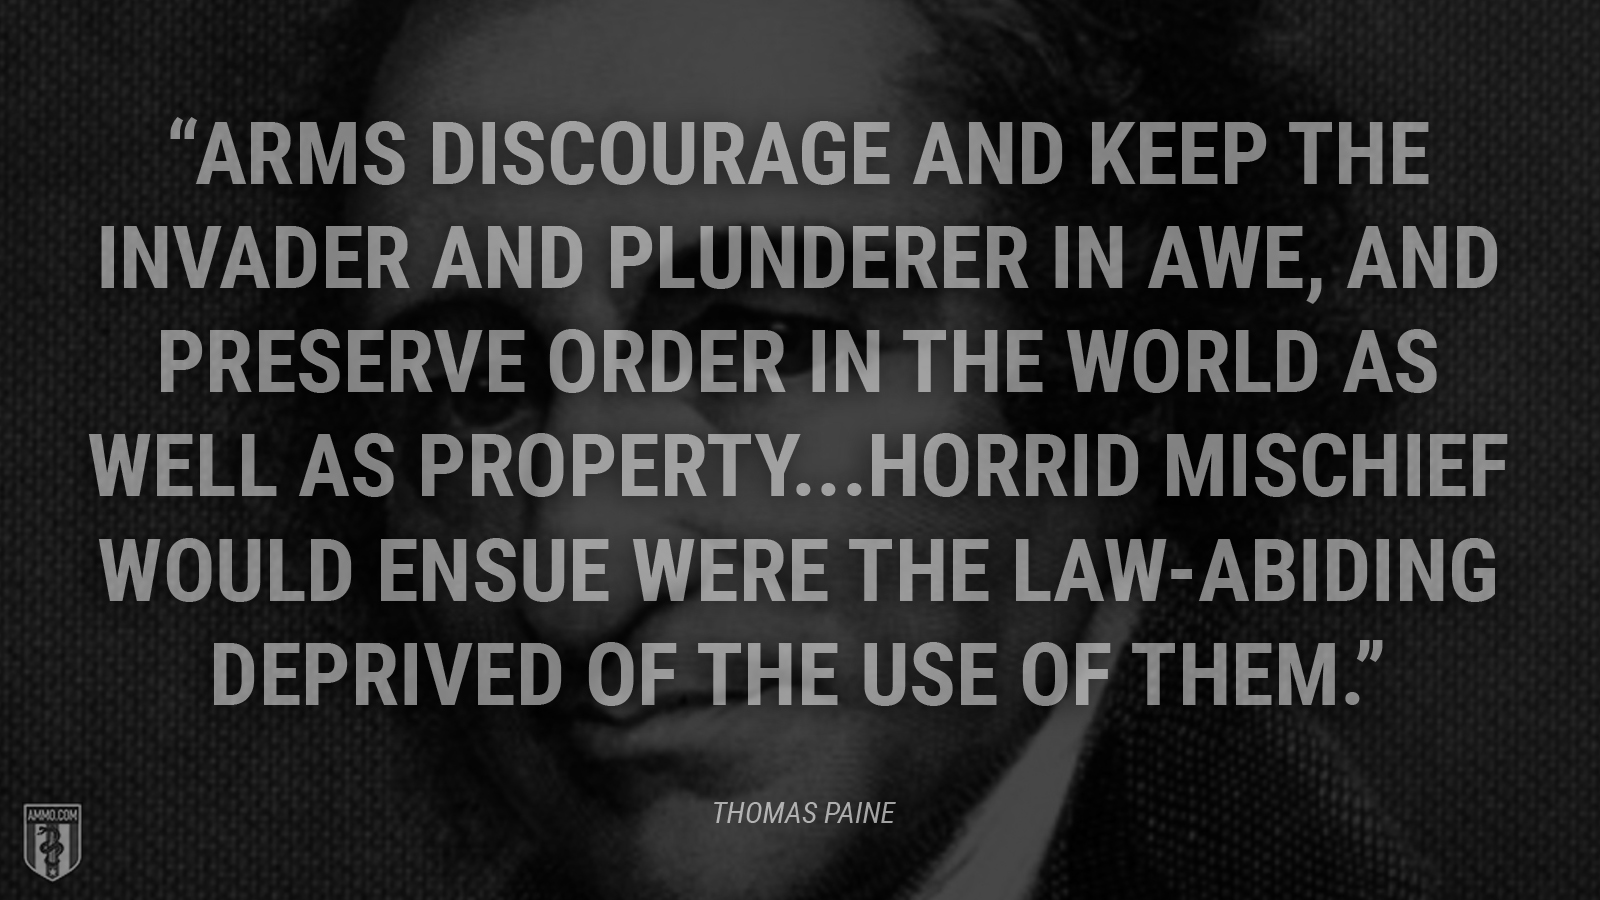 """Arms discourage and keep the invader and plunderer in awe, and preserve order in the world as well as property...Horrid mischief would ensue were the law-abiding deprived of the use of them."" - Thomas Paine"